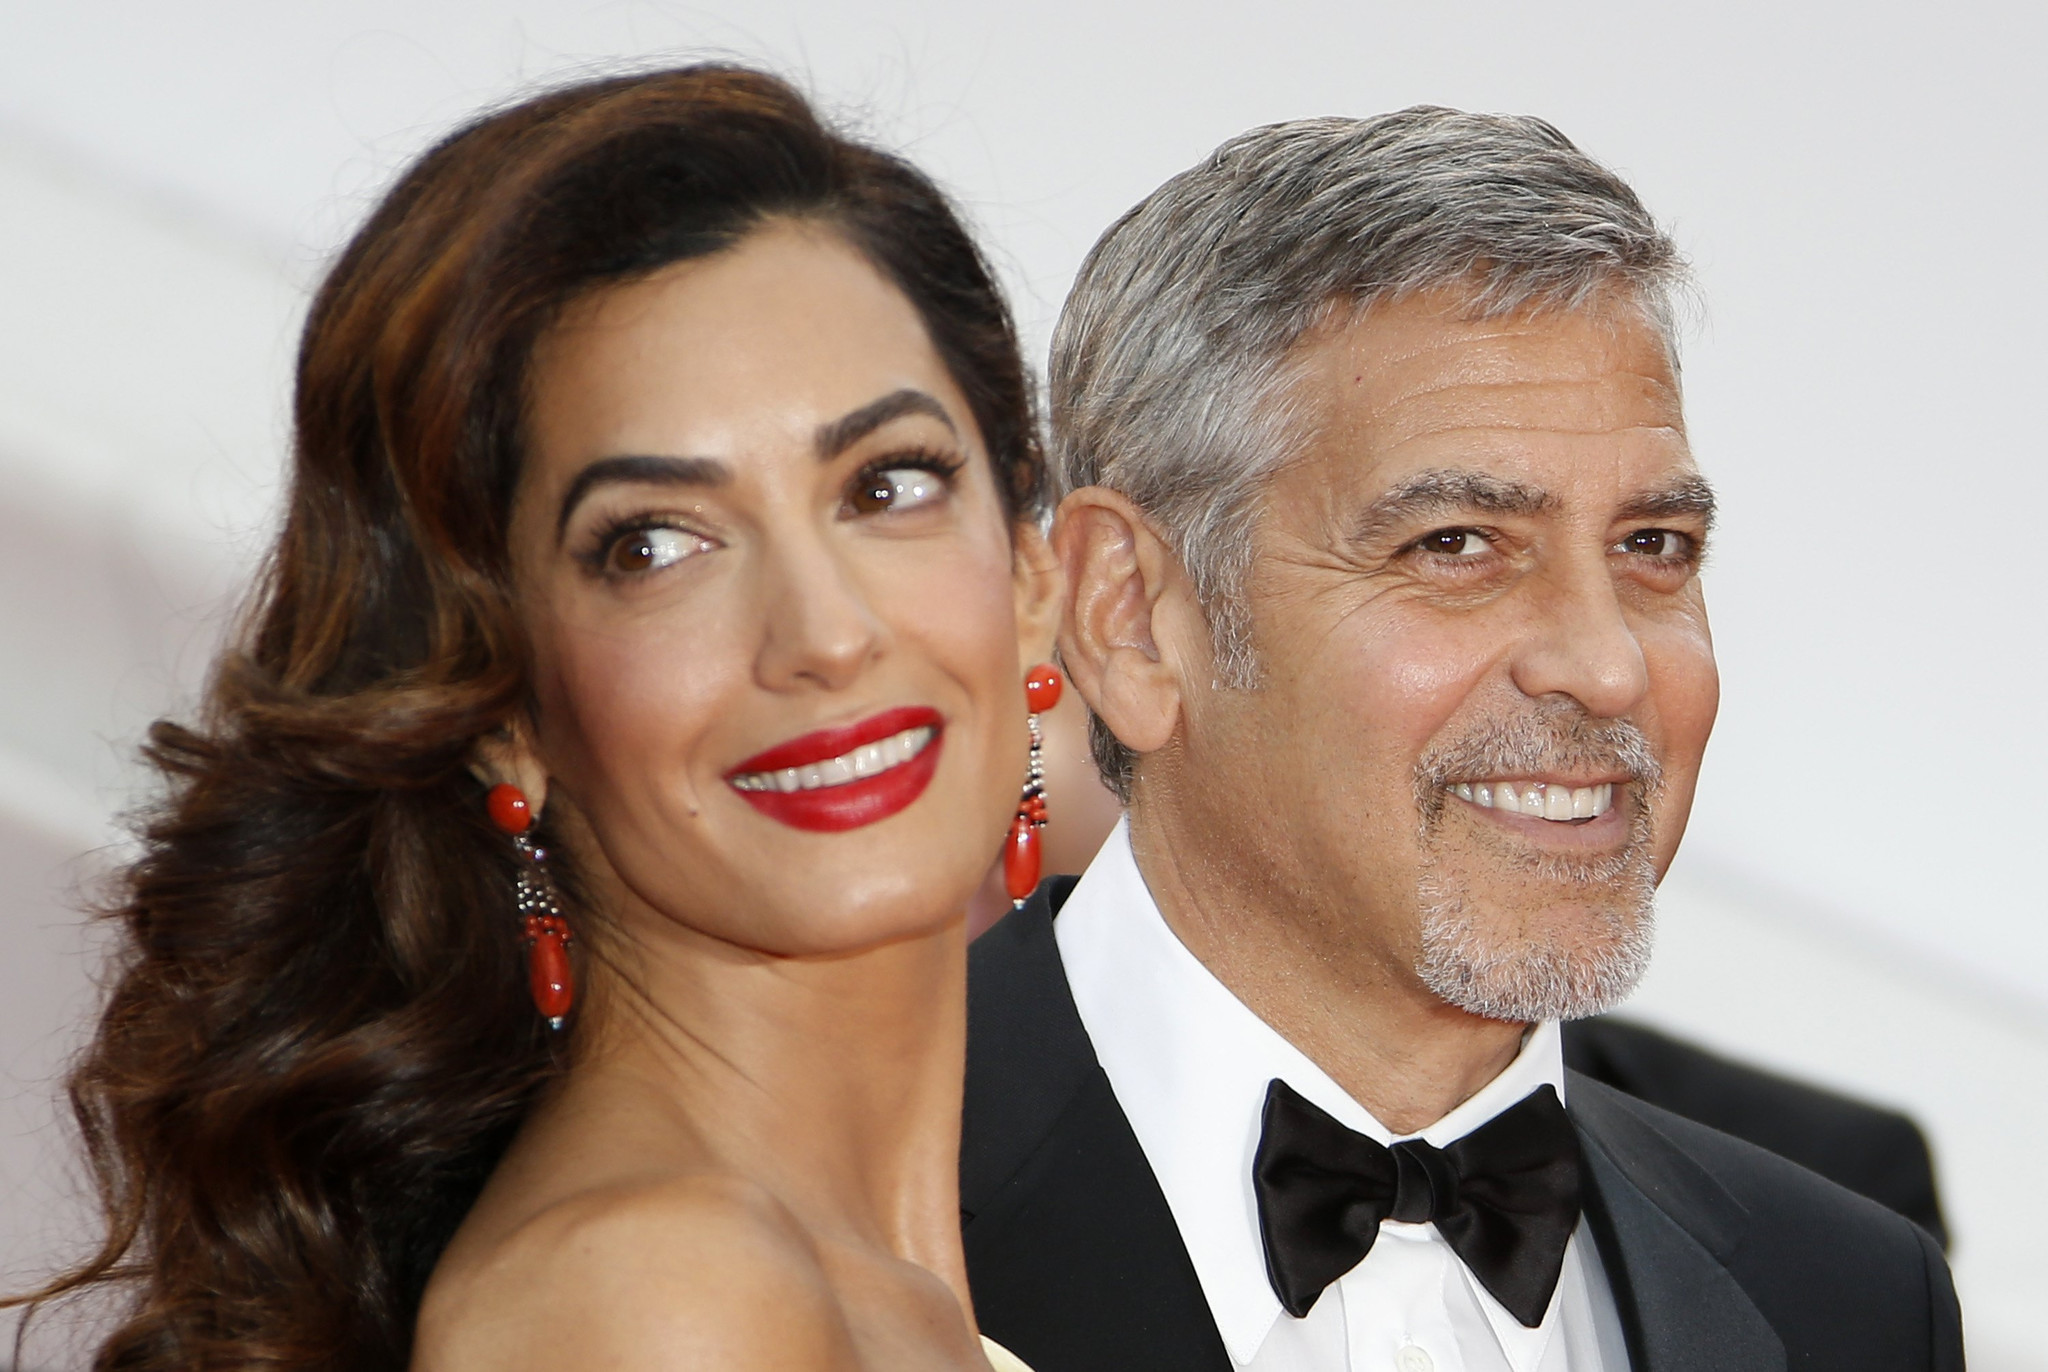 George and Amal Clooney's justice foundation gives $1-million grant to combat hate groups